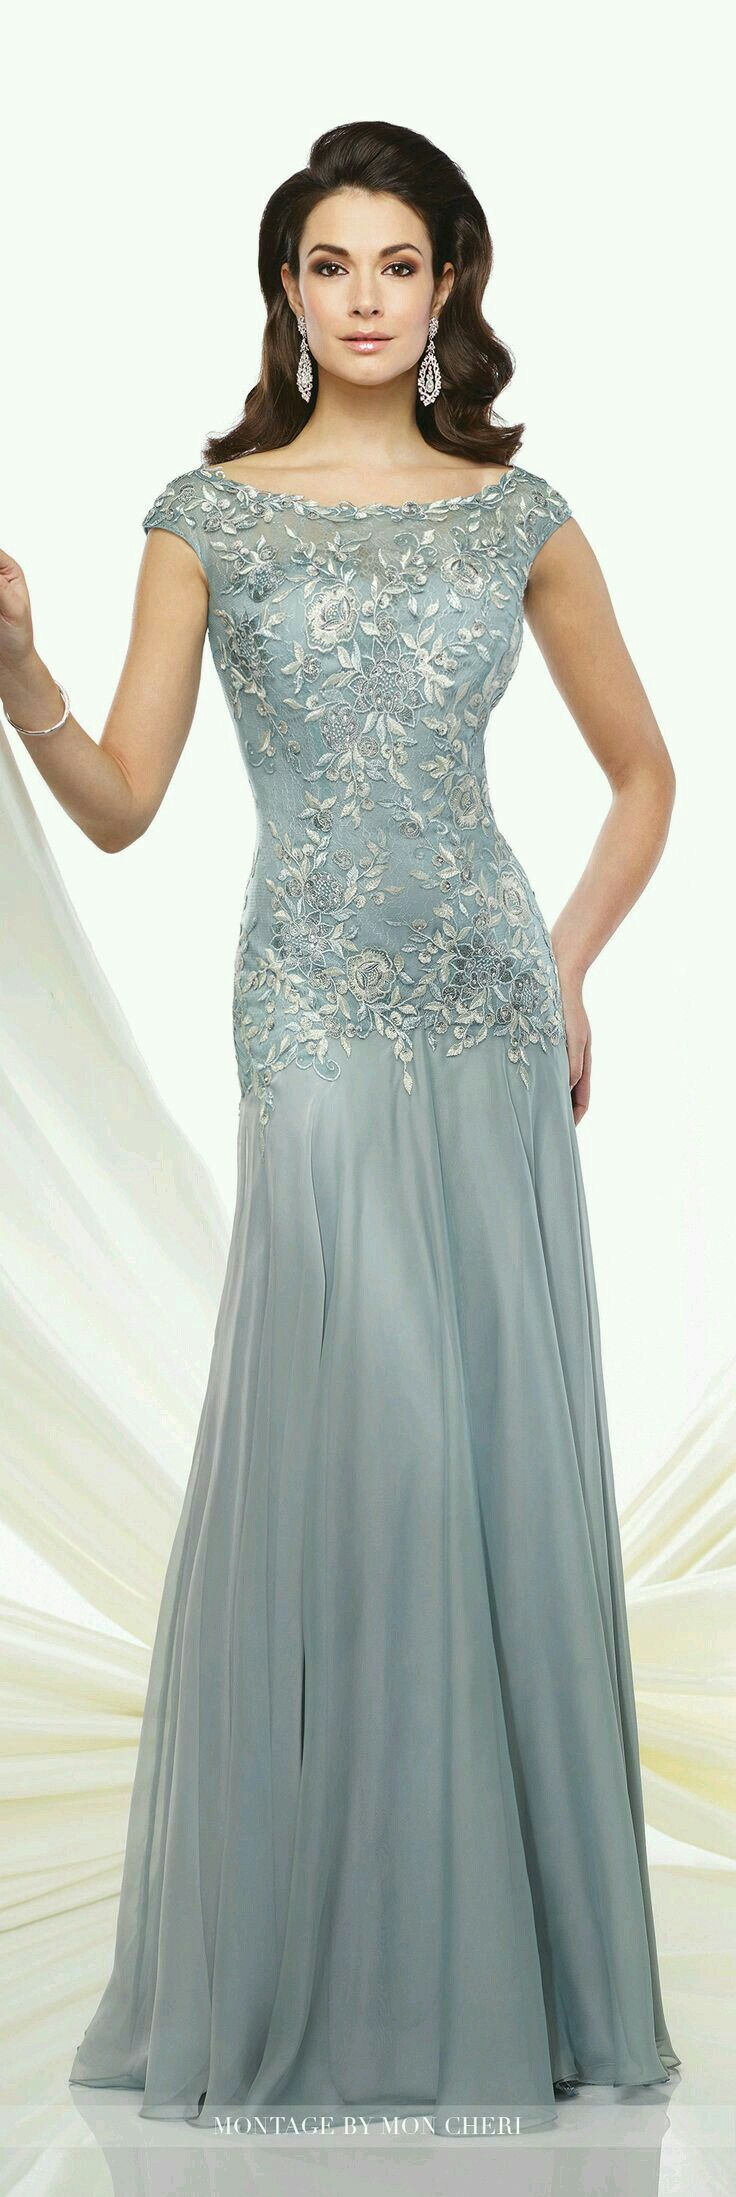 Pin by Gladys Paulino on Gris | Pinterest | Bride dresses, Gowns and ...